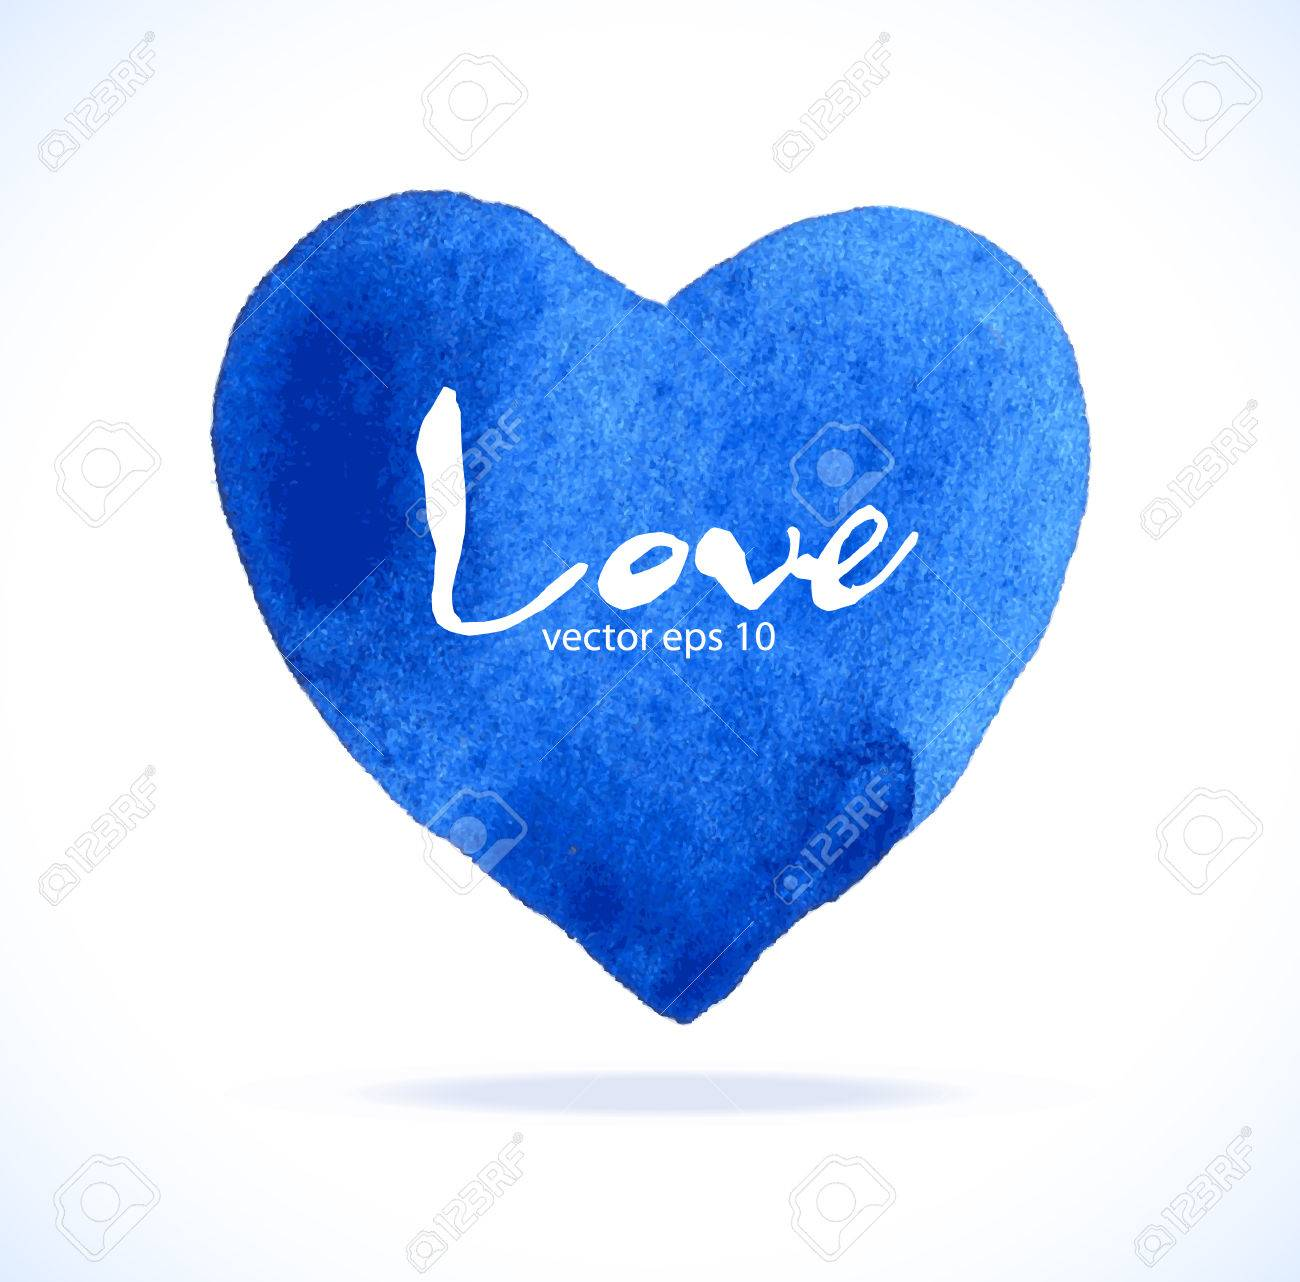 hight resolution of watercolor blue heart stock vector 32854847